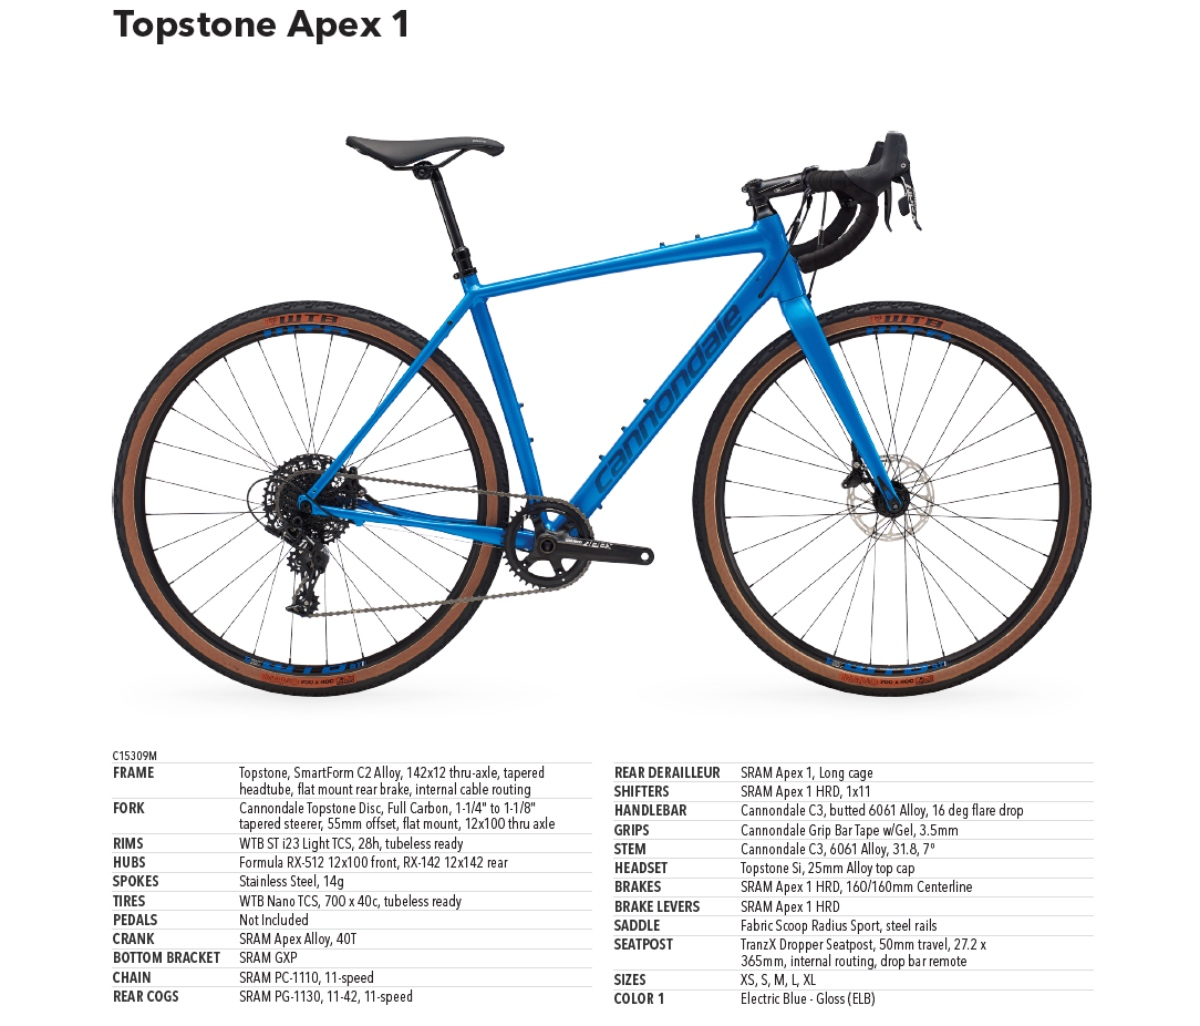 Cannondale Topstone Apex 1